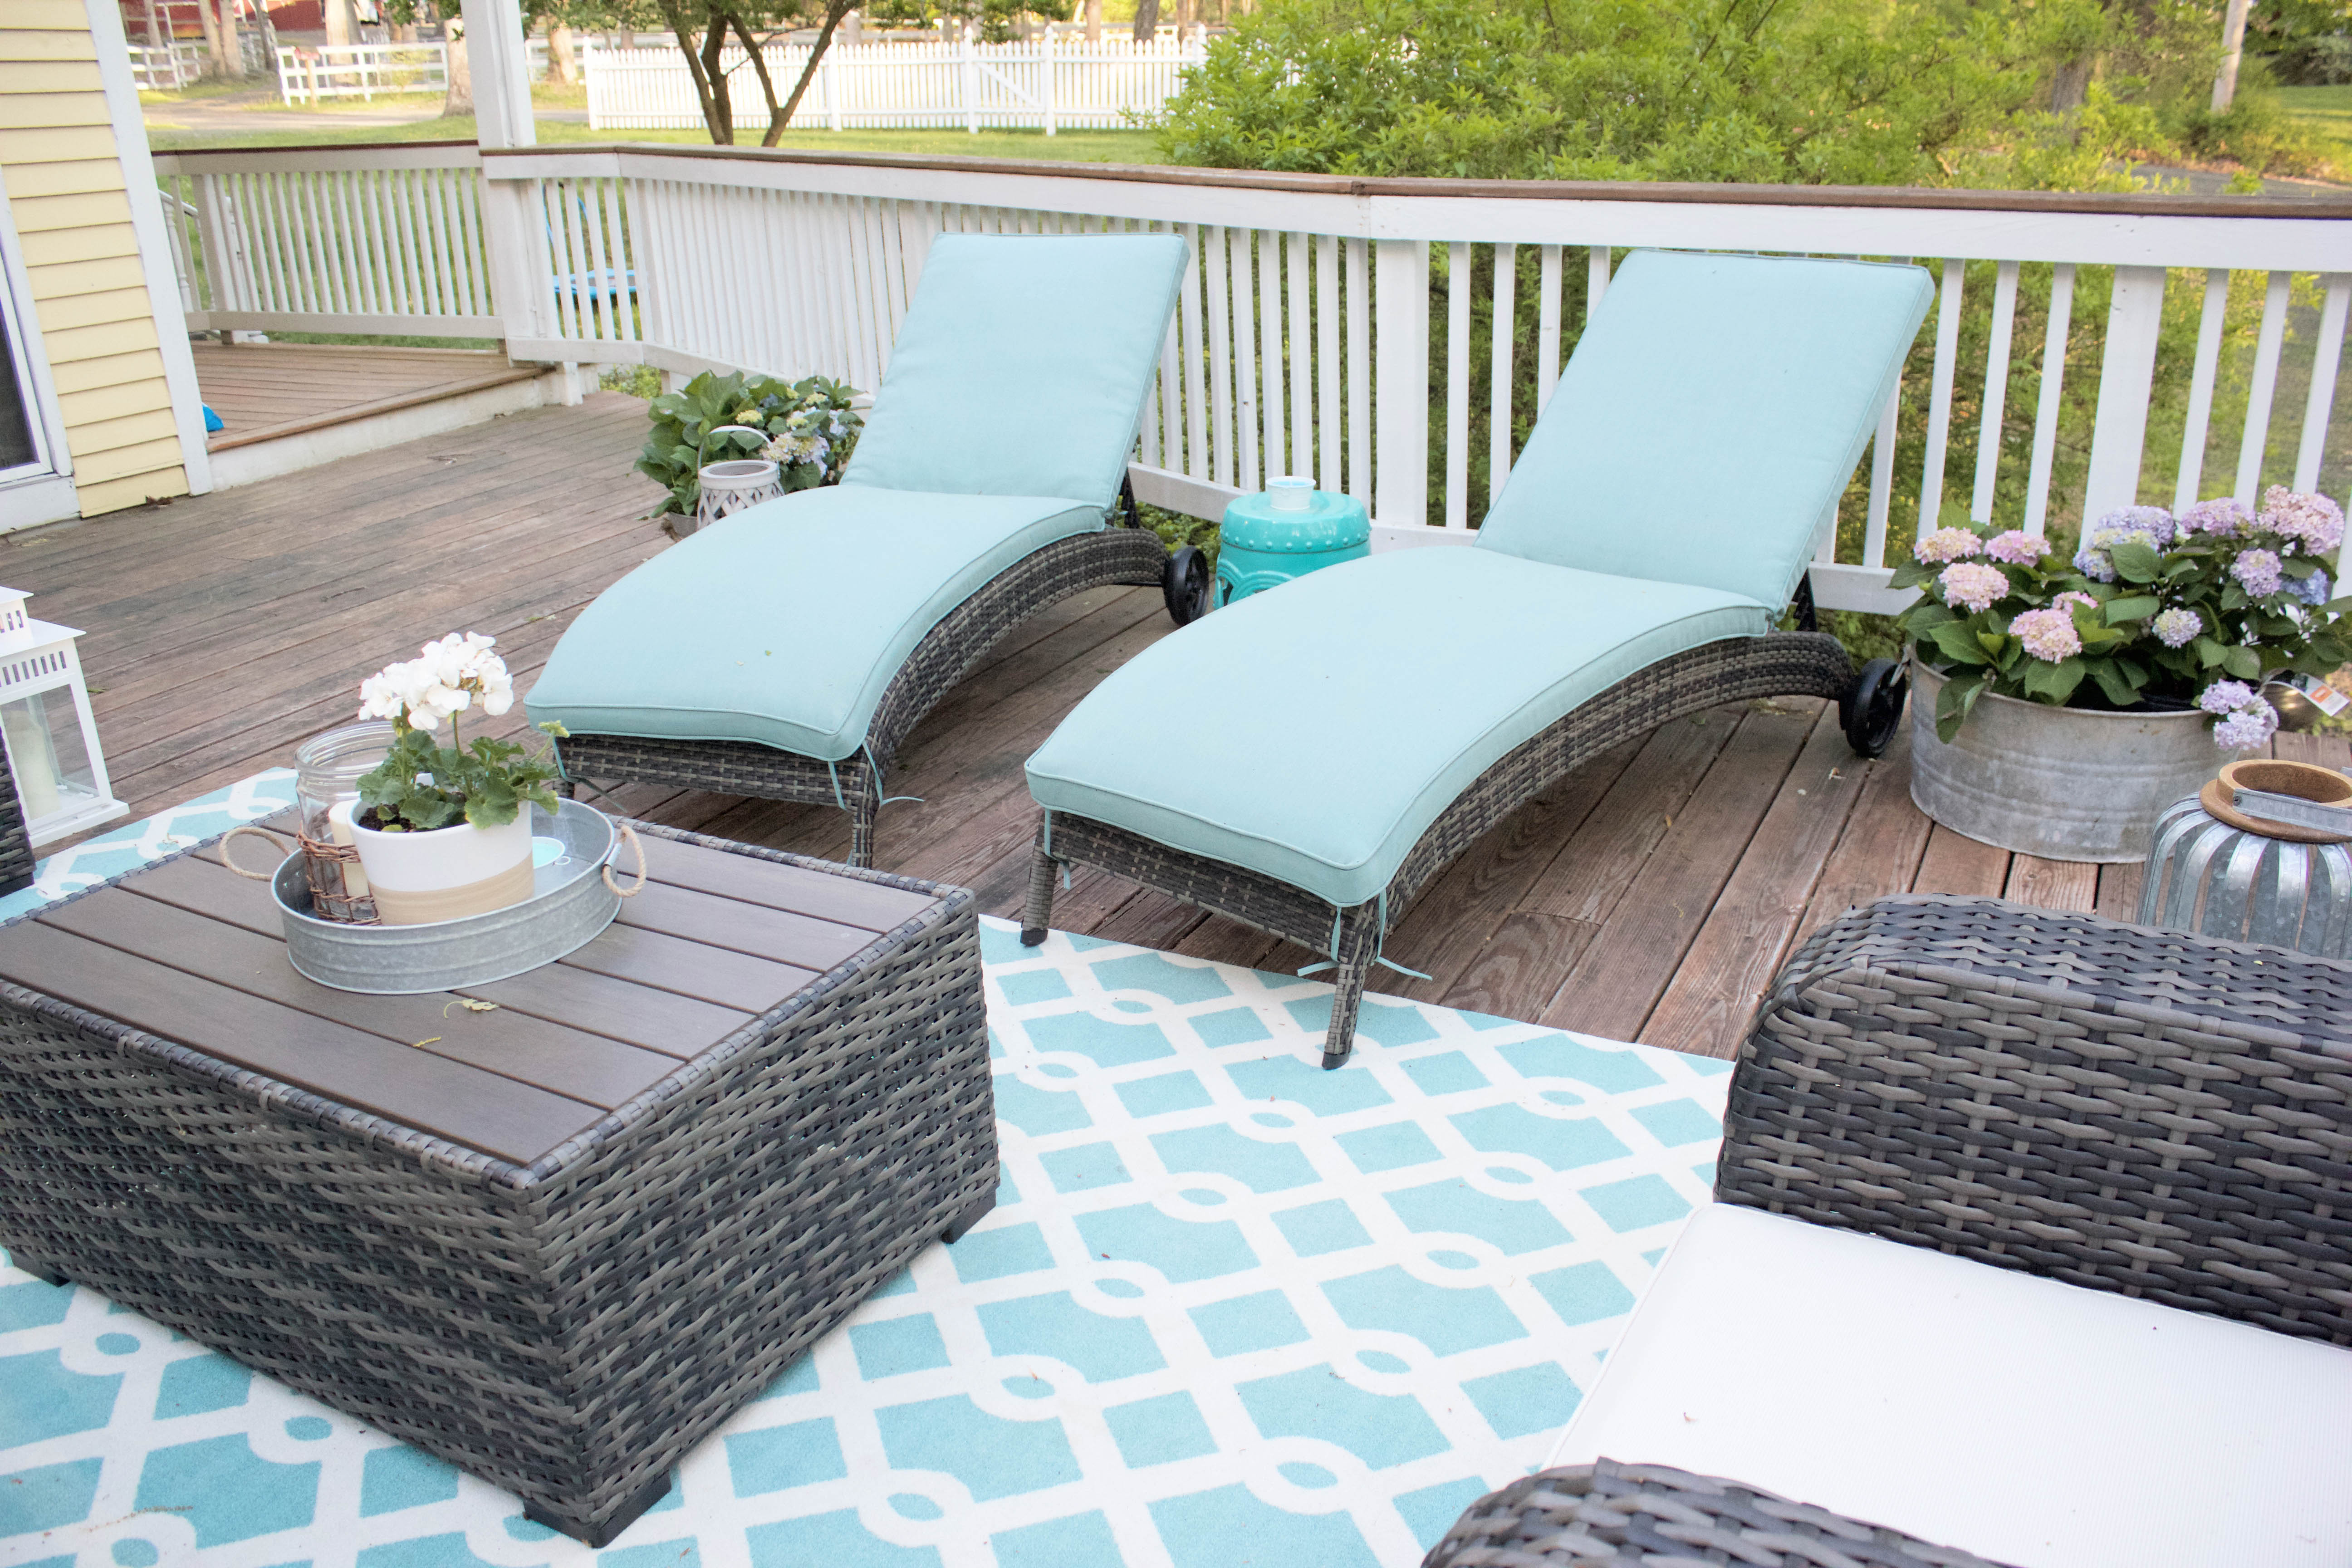 Weu0027ve Been Enjoying Our Outdoor Patio Set From Raymour U0026 Flanigan For A Few  Weeks Now And Absolutely Love It. Itu0027s SO Relaxing Out There! Part 18